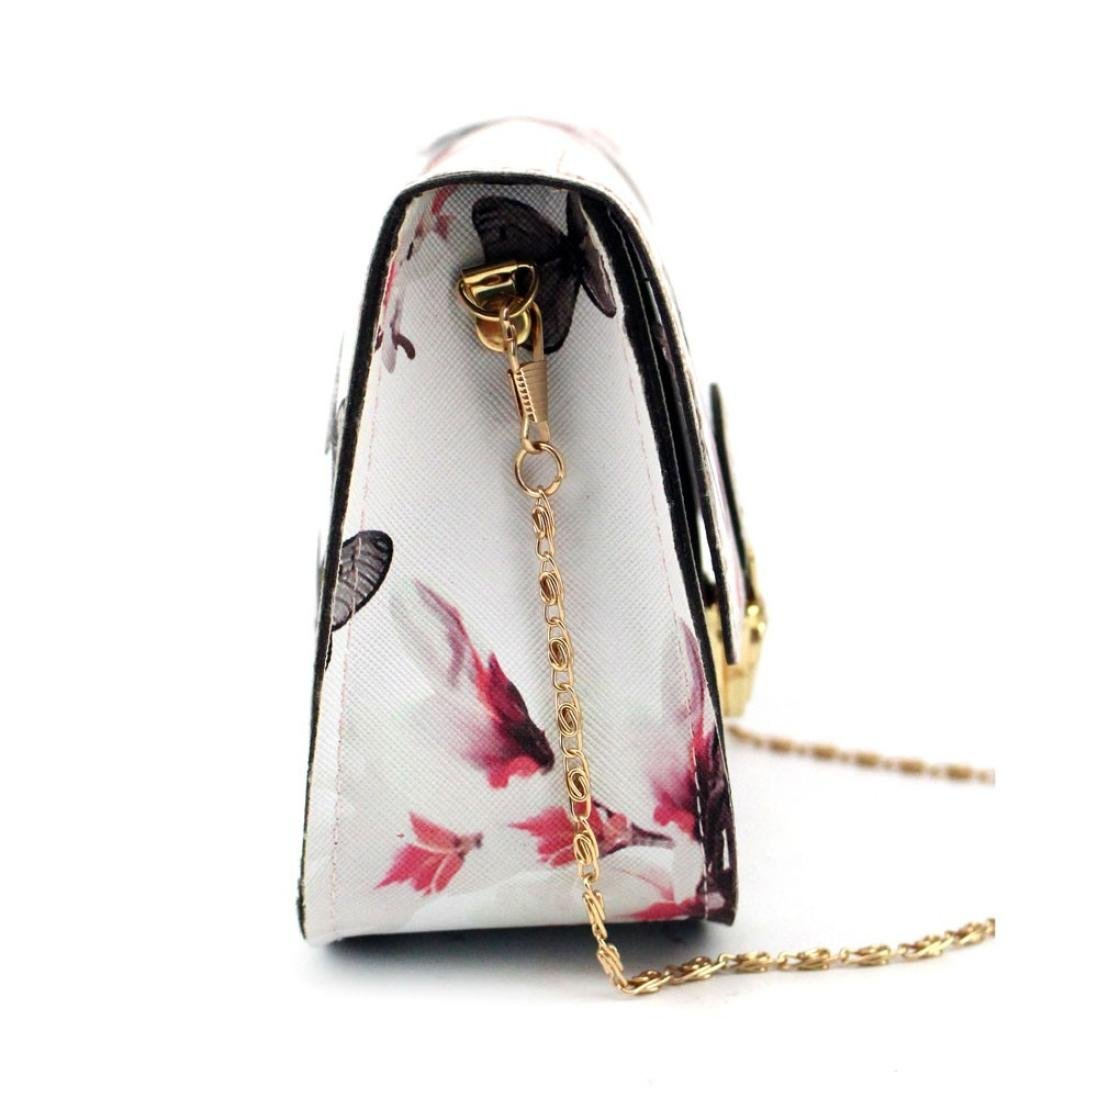 Outsta Butterfly Flower Printing Handbag,Women Shoulder Bag Tote Messenger Bag Phone Bag Coin Bag Travel Backpack Bucket Bag Classic Basic Casual Daypack Travel (White) by Outsta (Image #4)